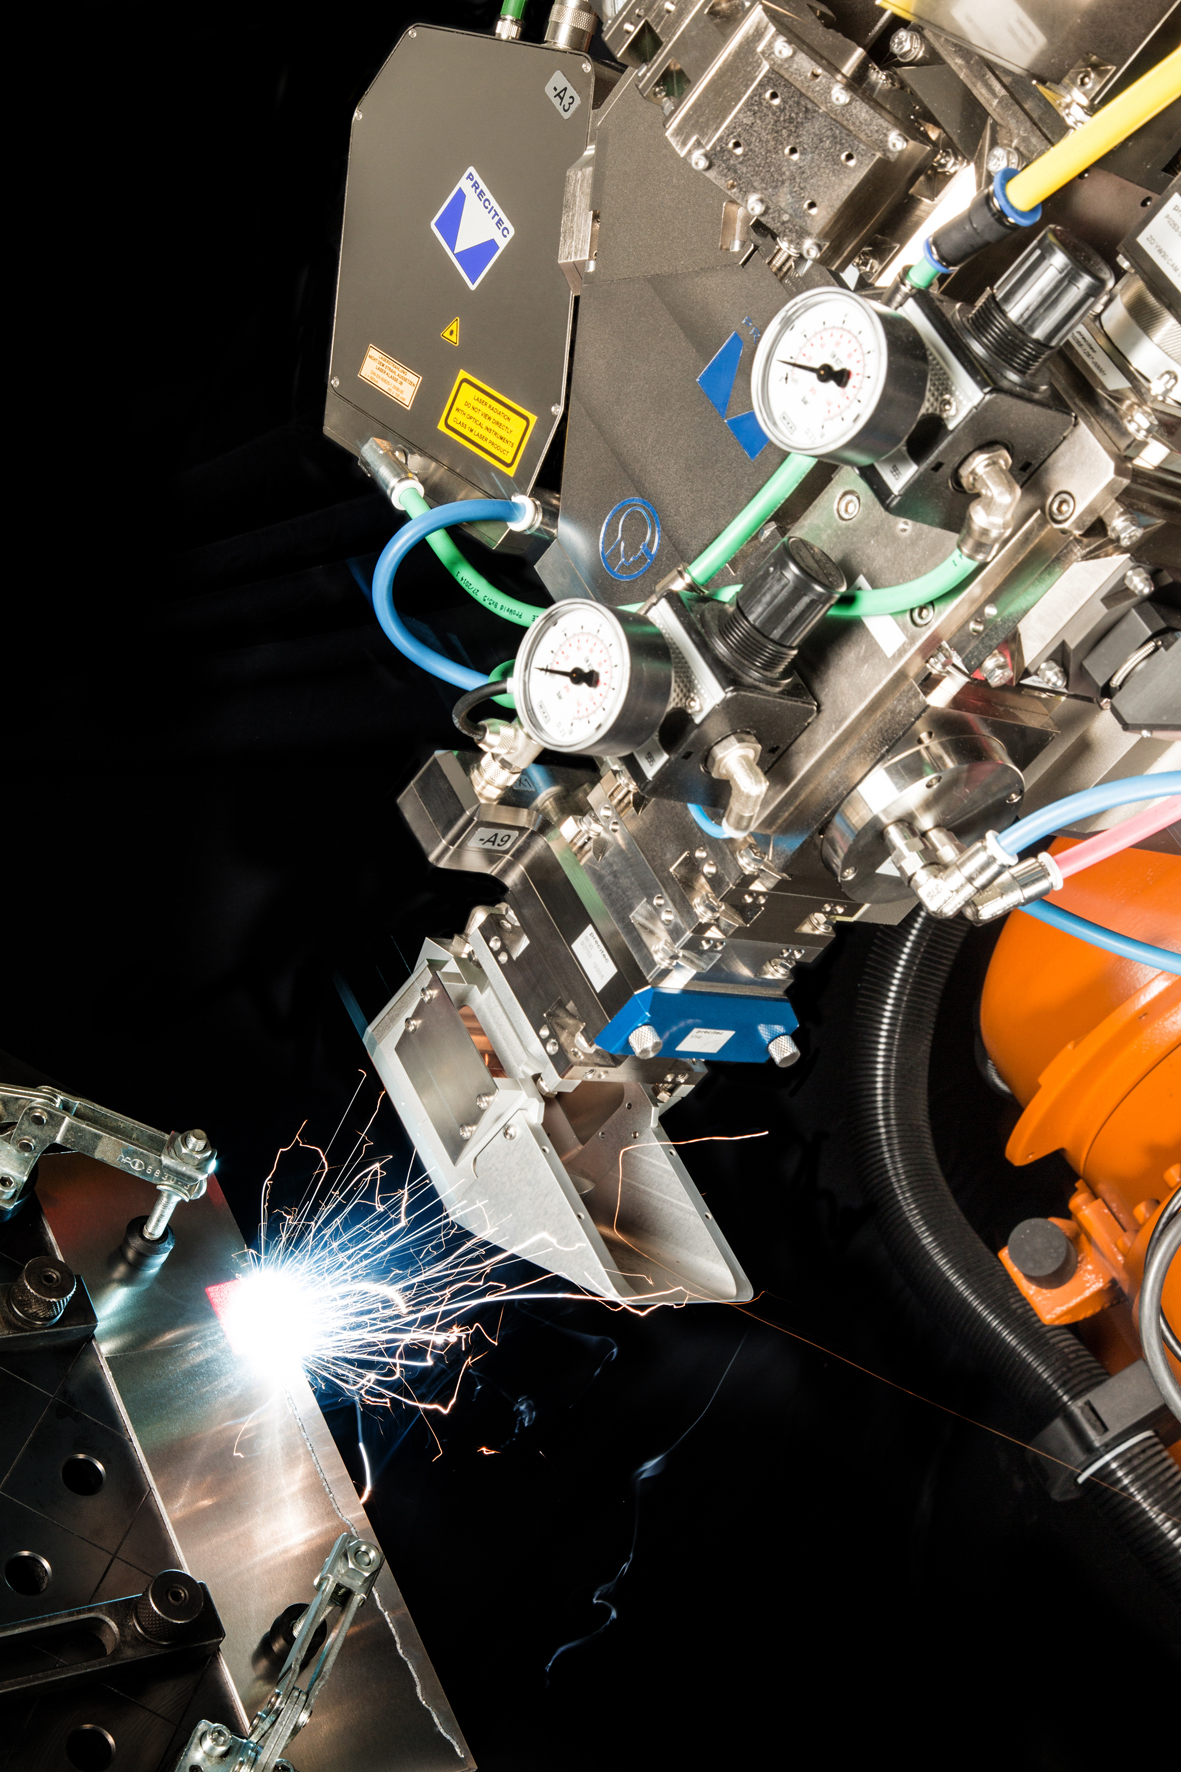 A new process approaches for laser welding - Metal Working World